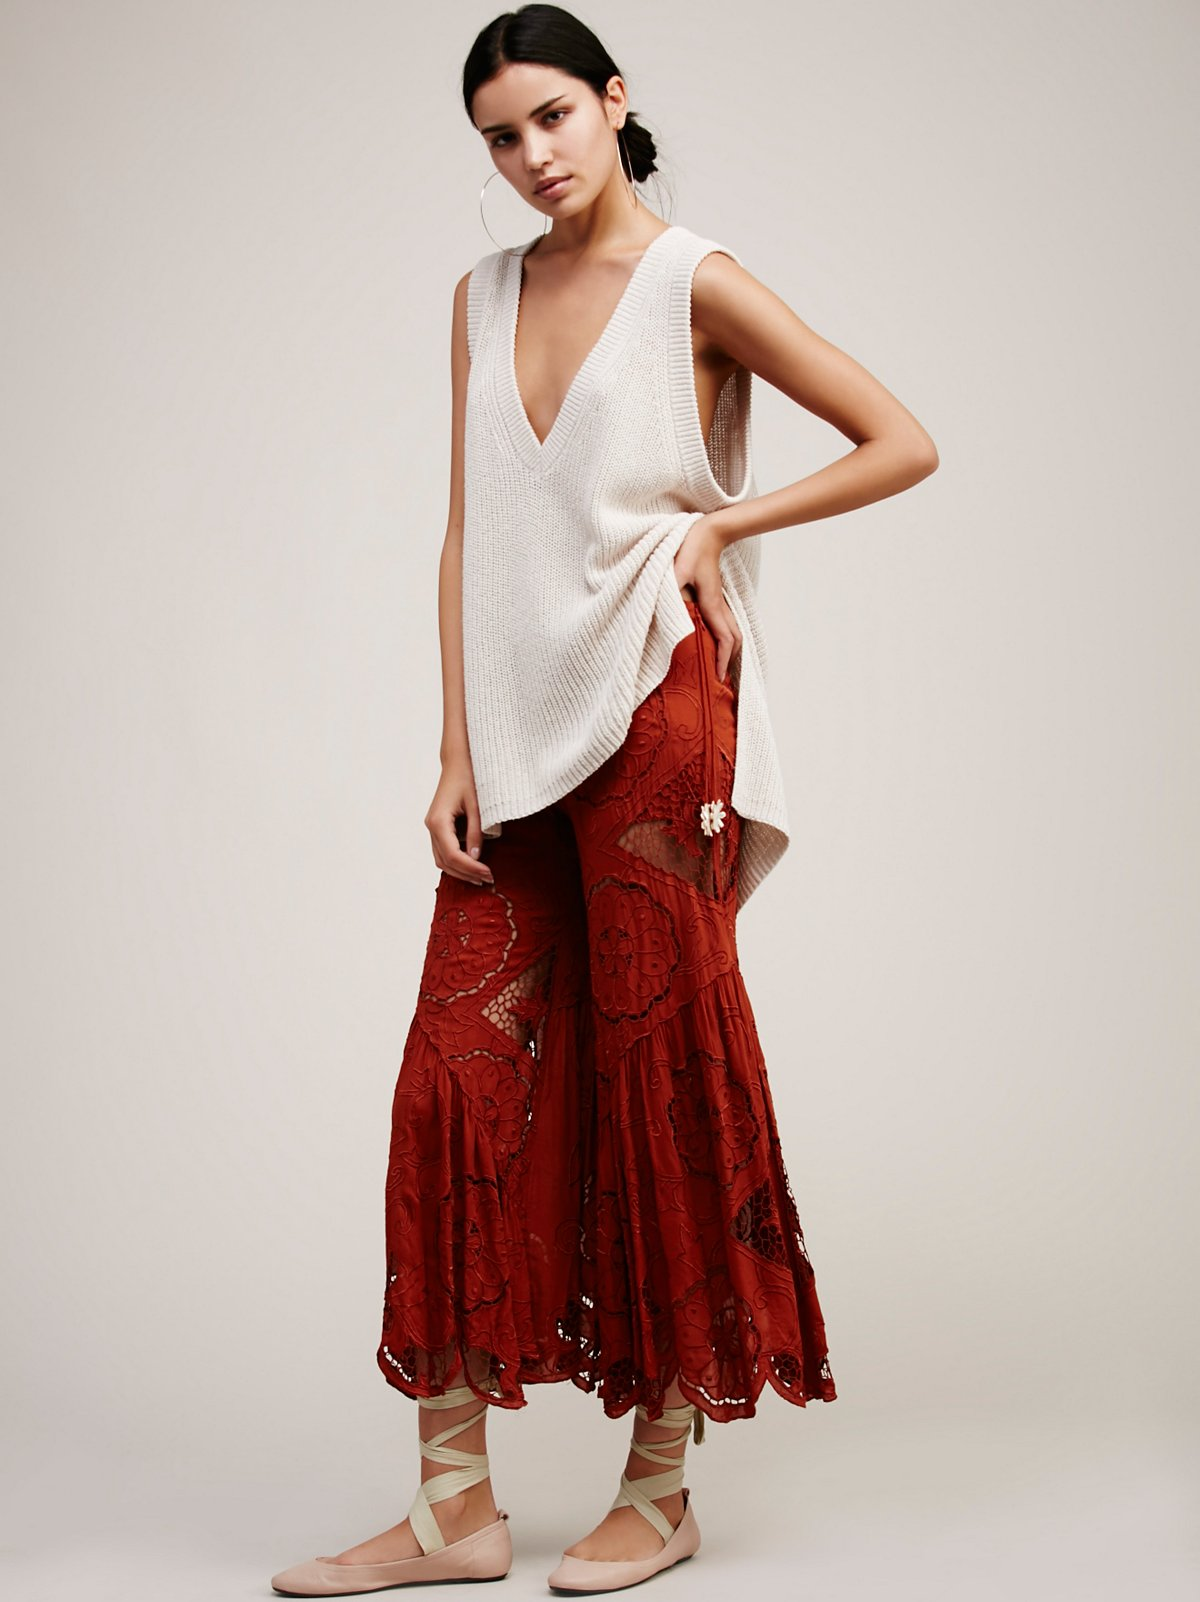 Bali Les Folies Culotte Pant At Free People Clothing Boutique